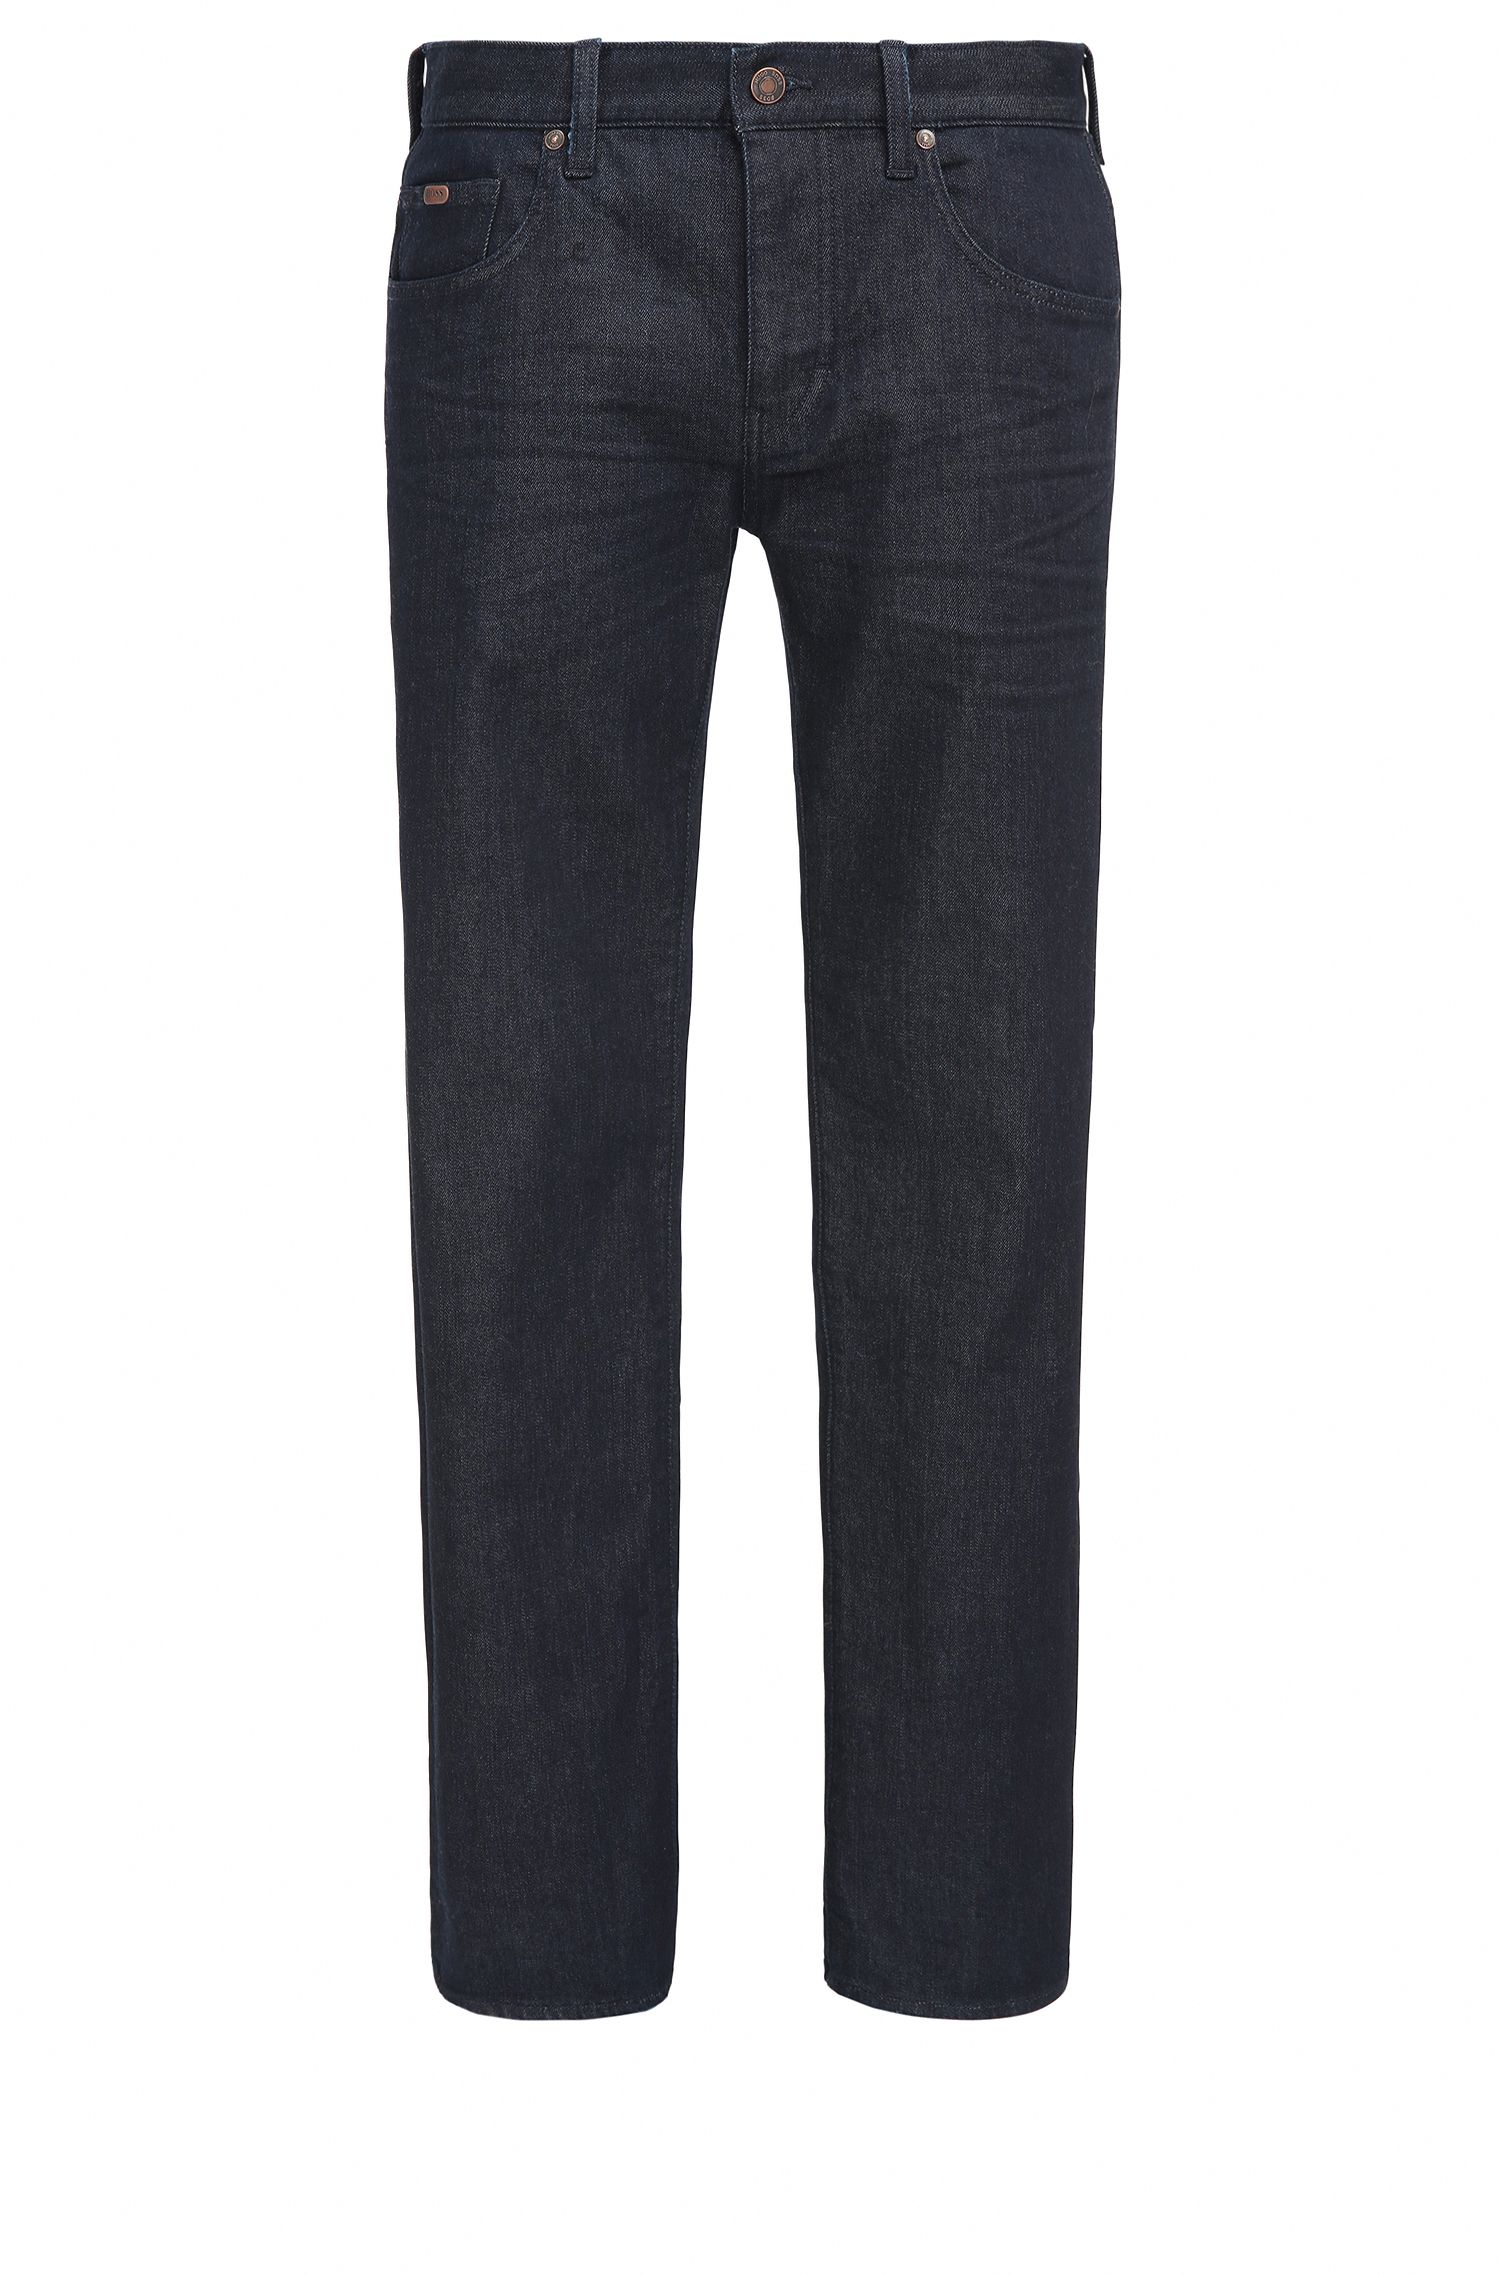 Jeans Relaxed Fit en denim stretch confortable